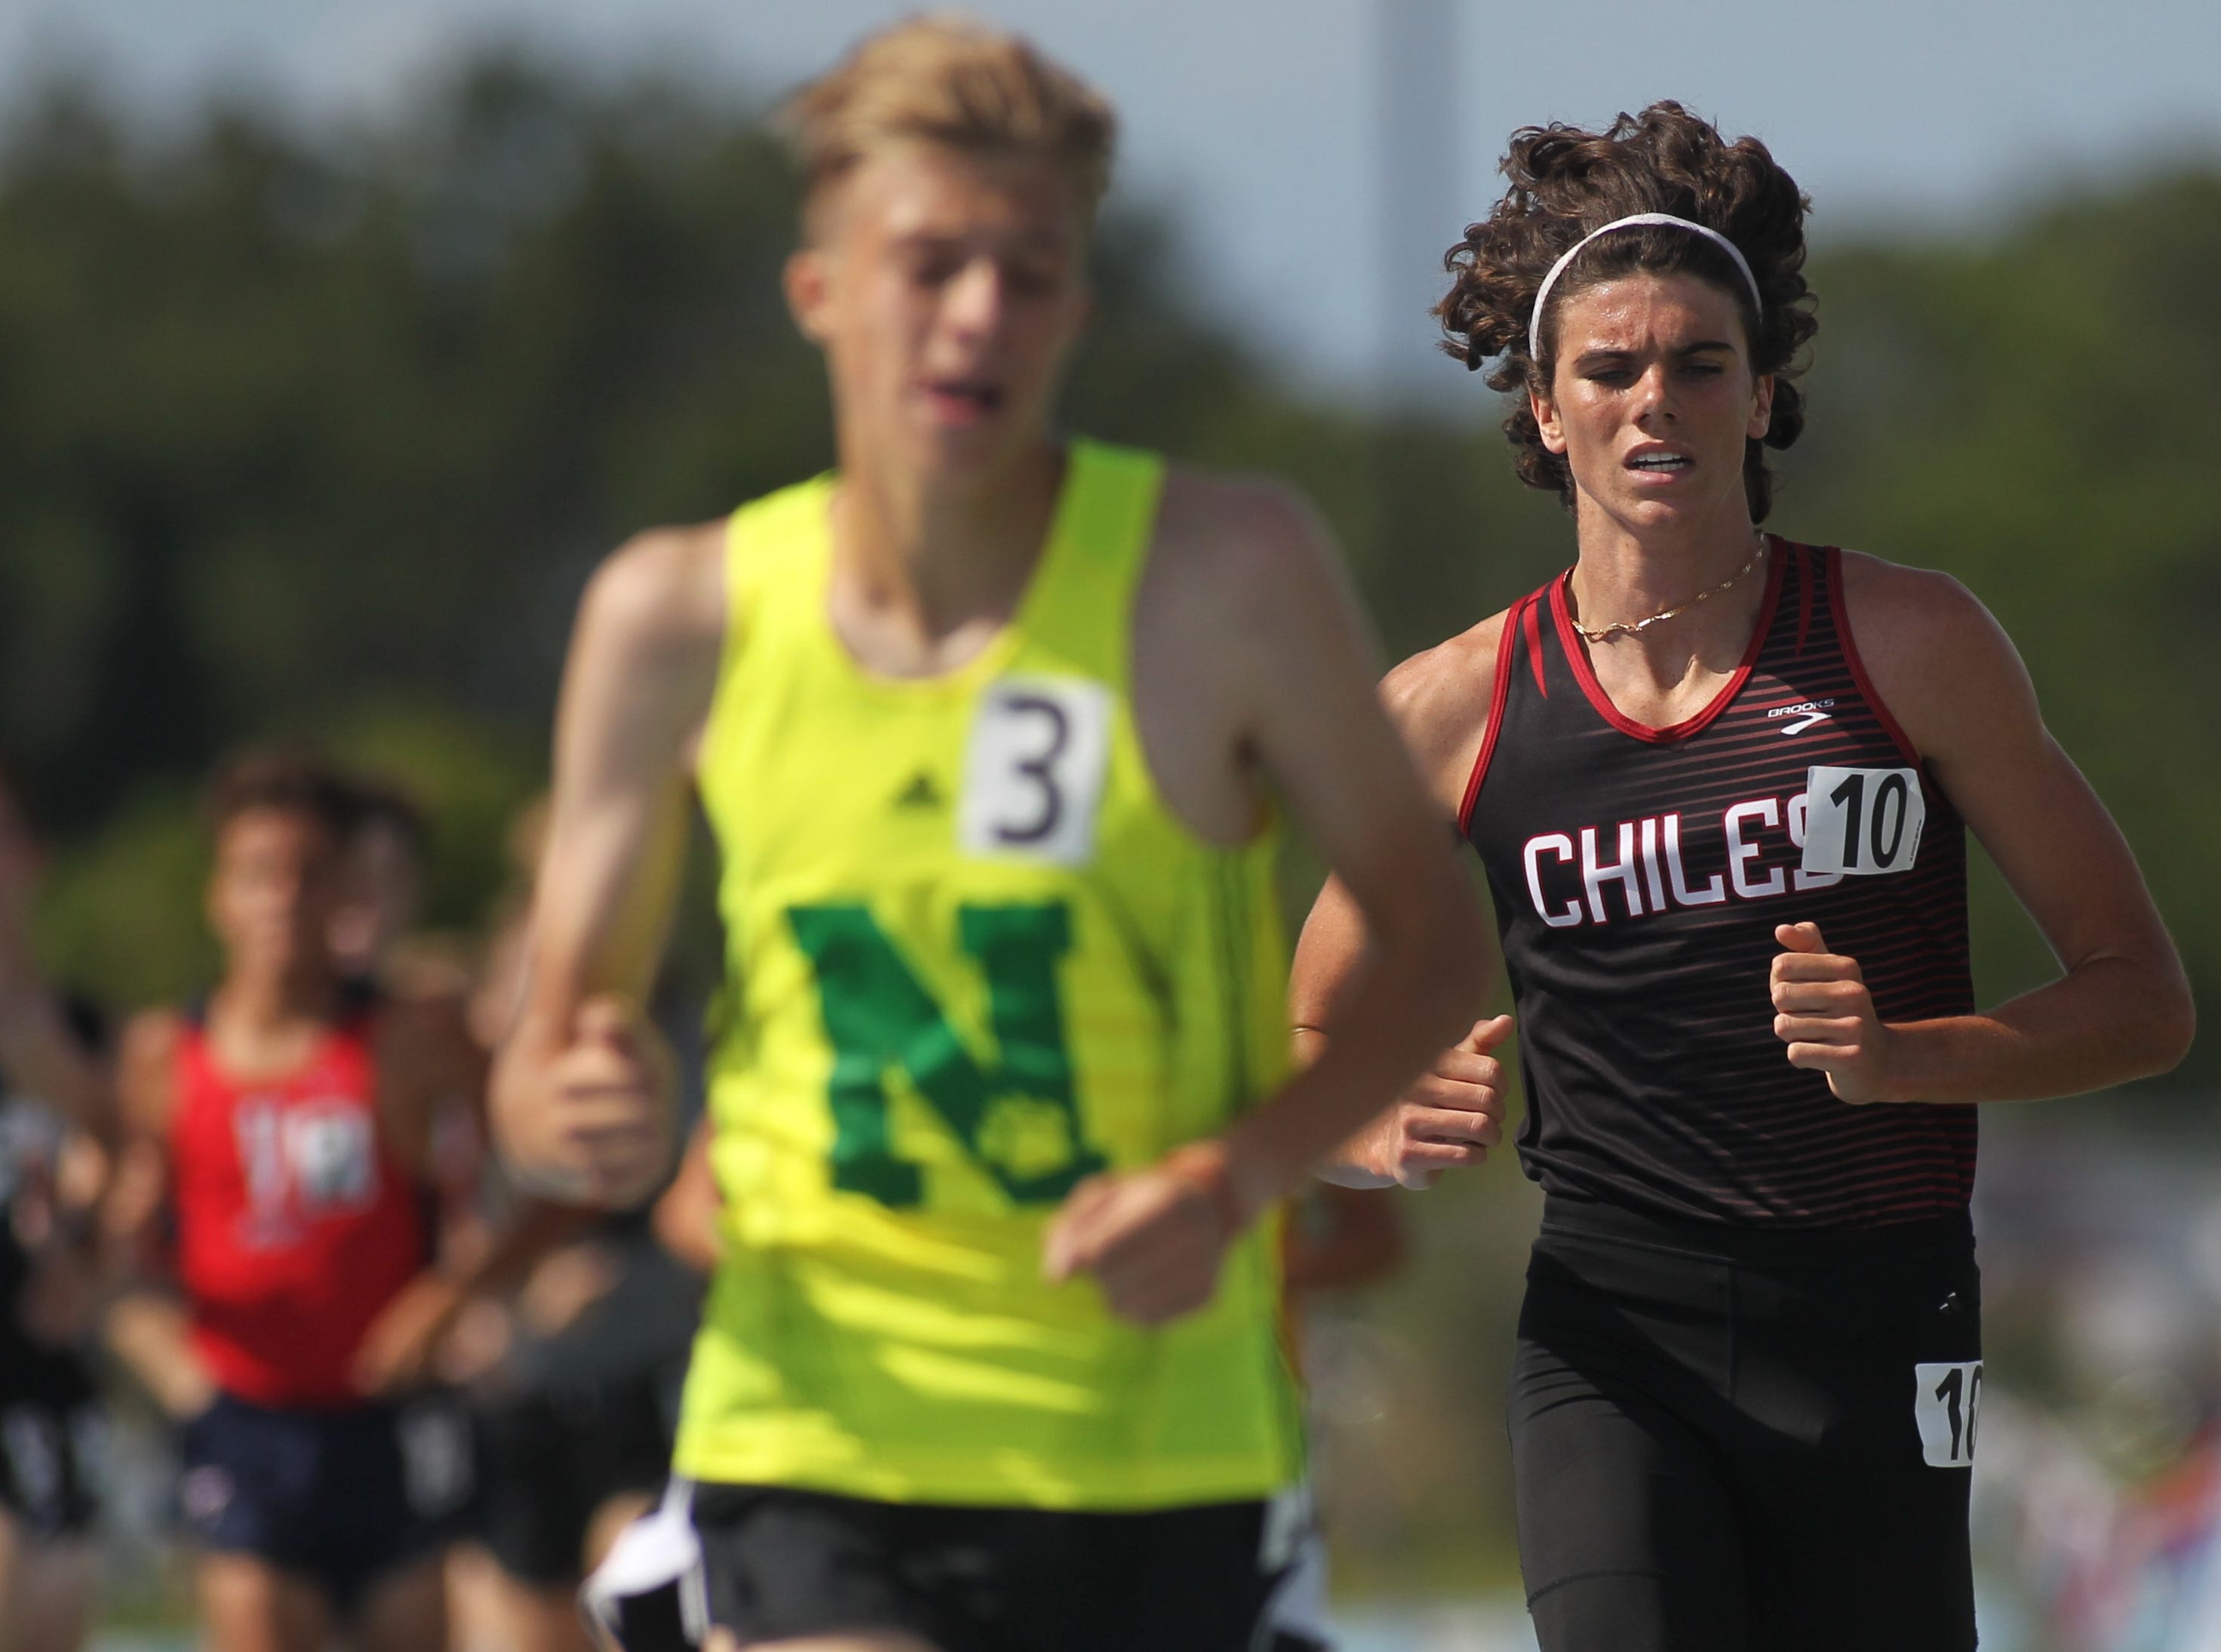 Chiles senior Connor Phillips took fifth in the Class 3A 800m and 1600m runs at the FHSAA Track and Field State Championships at UNF's Hodges Stadium in Jacksonville on May 4, 2019.